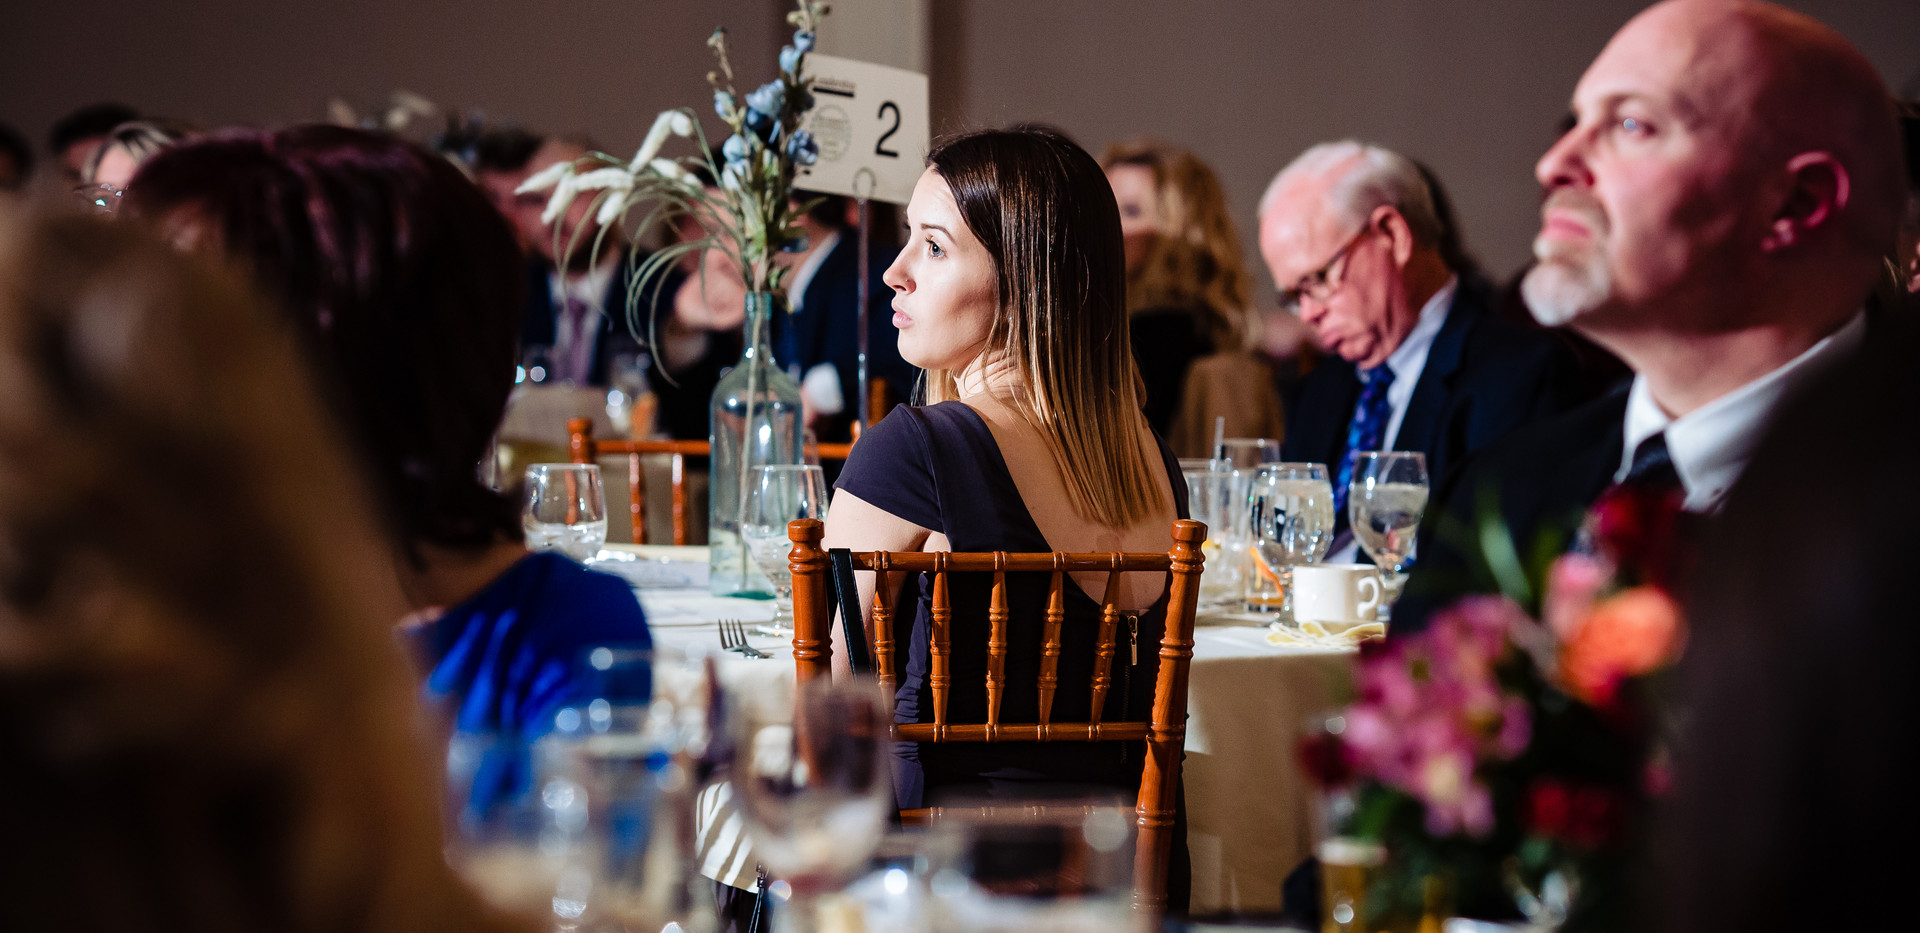 2020-02-20 Chamber of Commerce Gala-0115